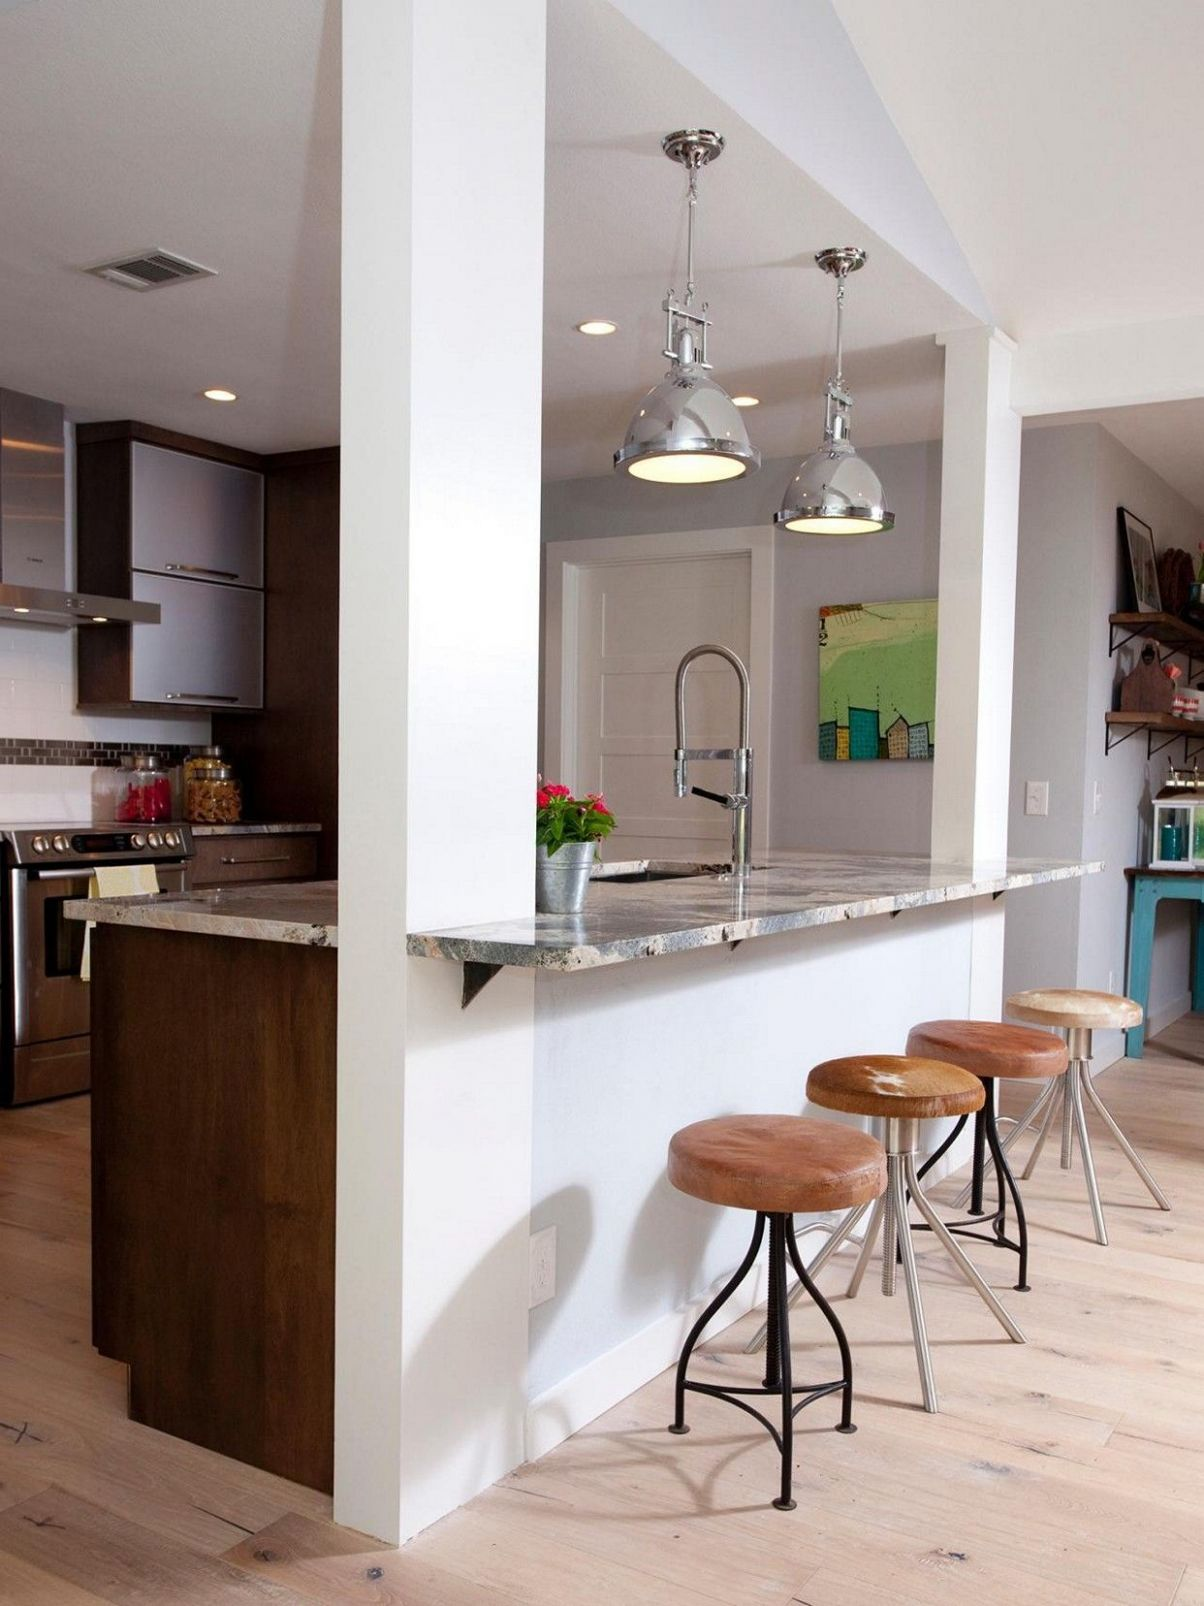 Open kitchen ideas: living kitchens can be so beautiful! | Kitchen ..